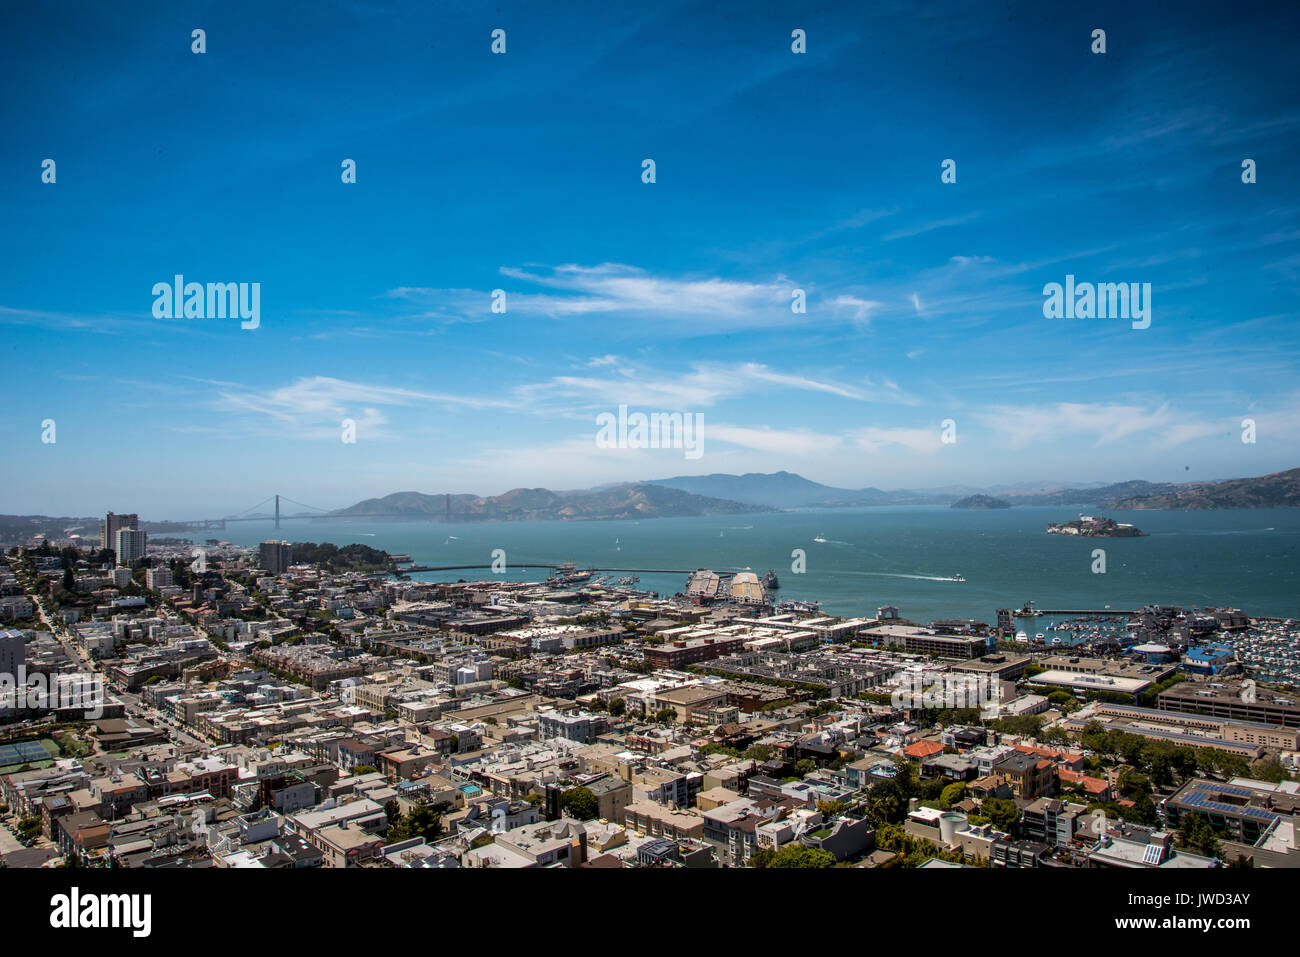 Aerial Landscape View of Bay - Stock Image